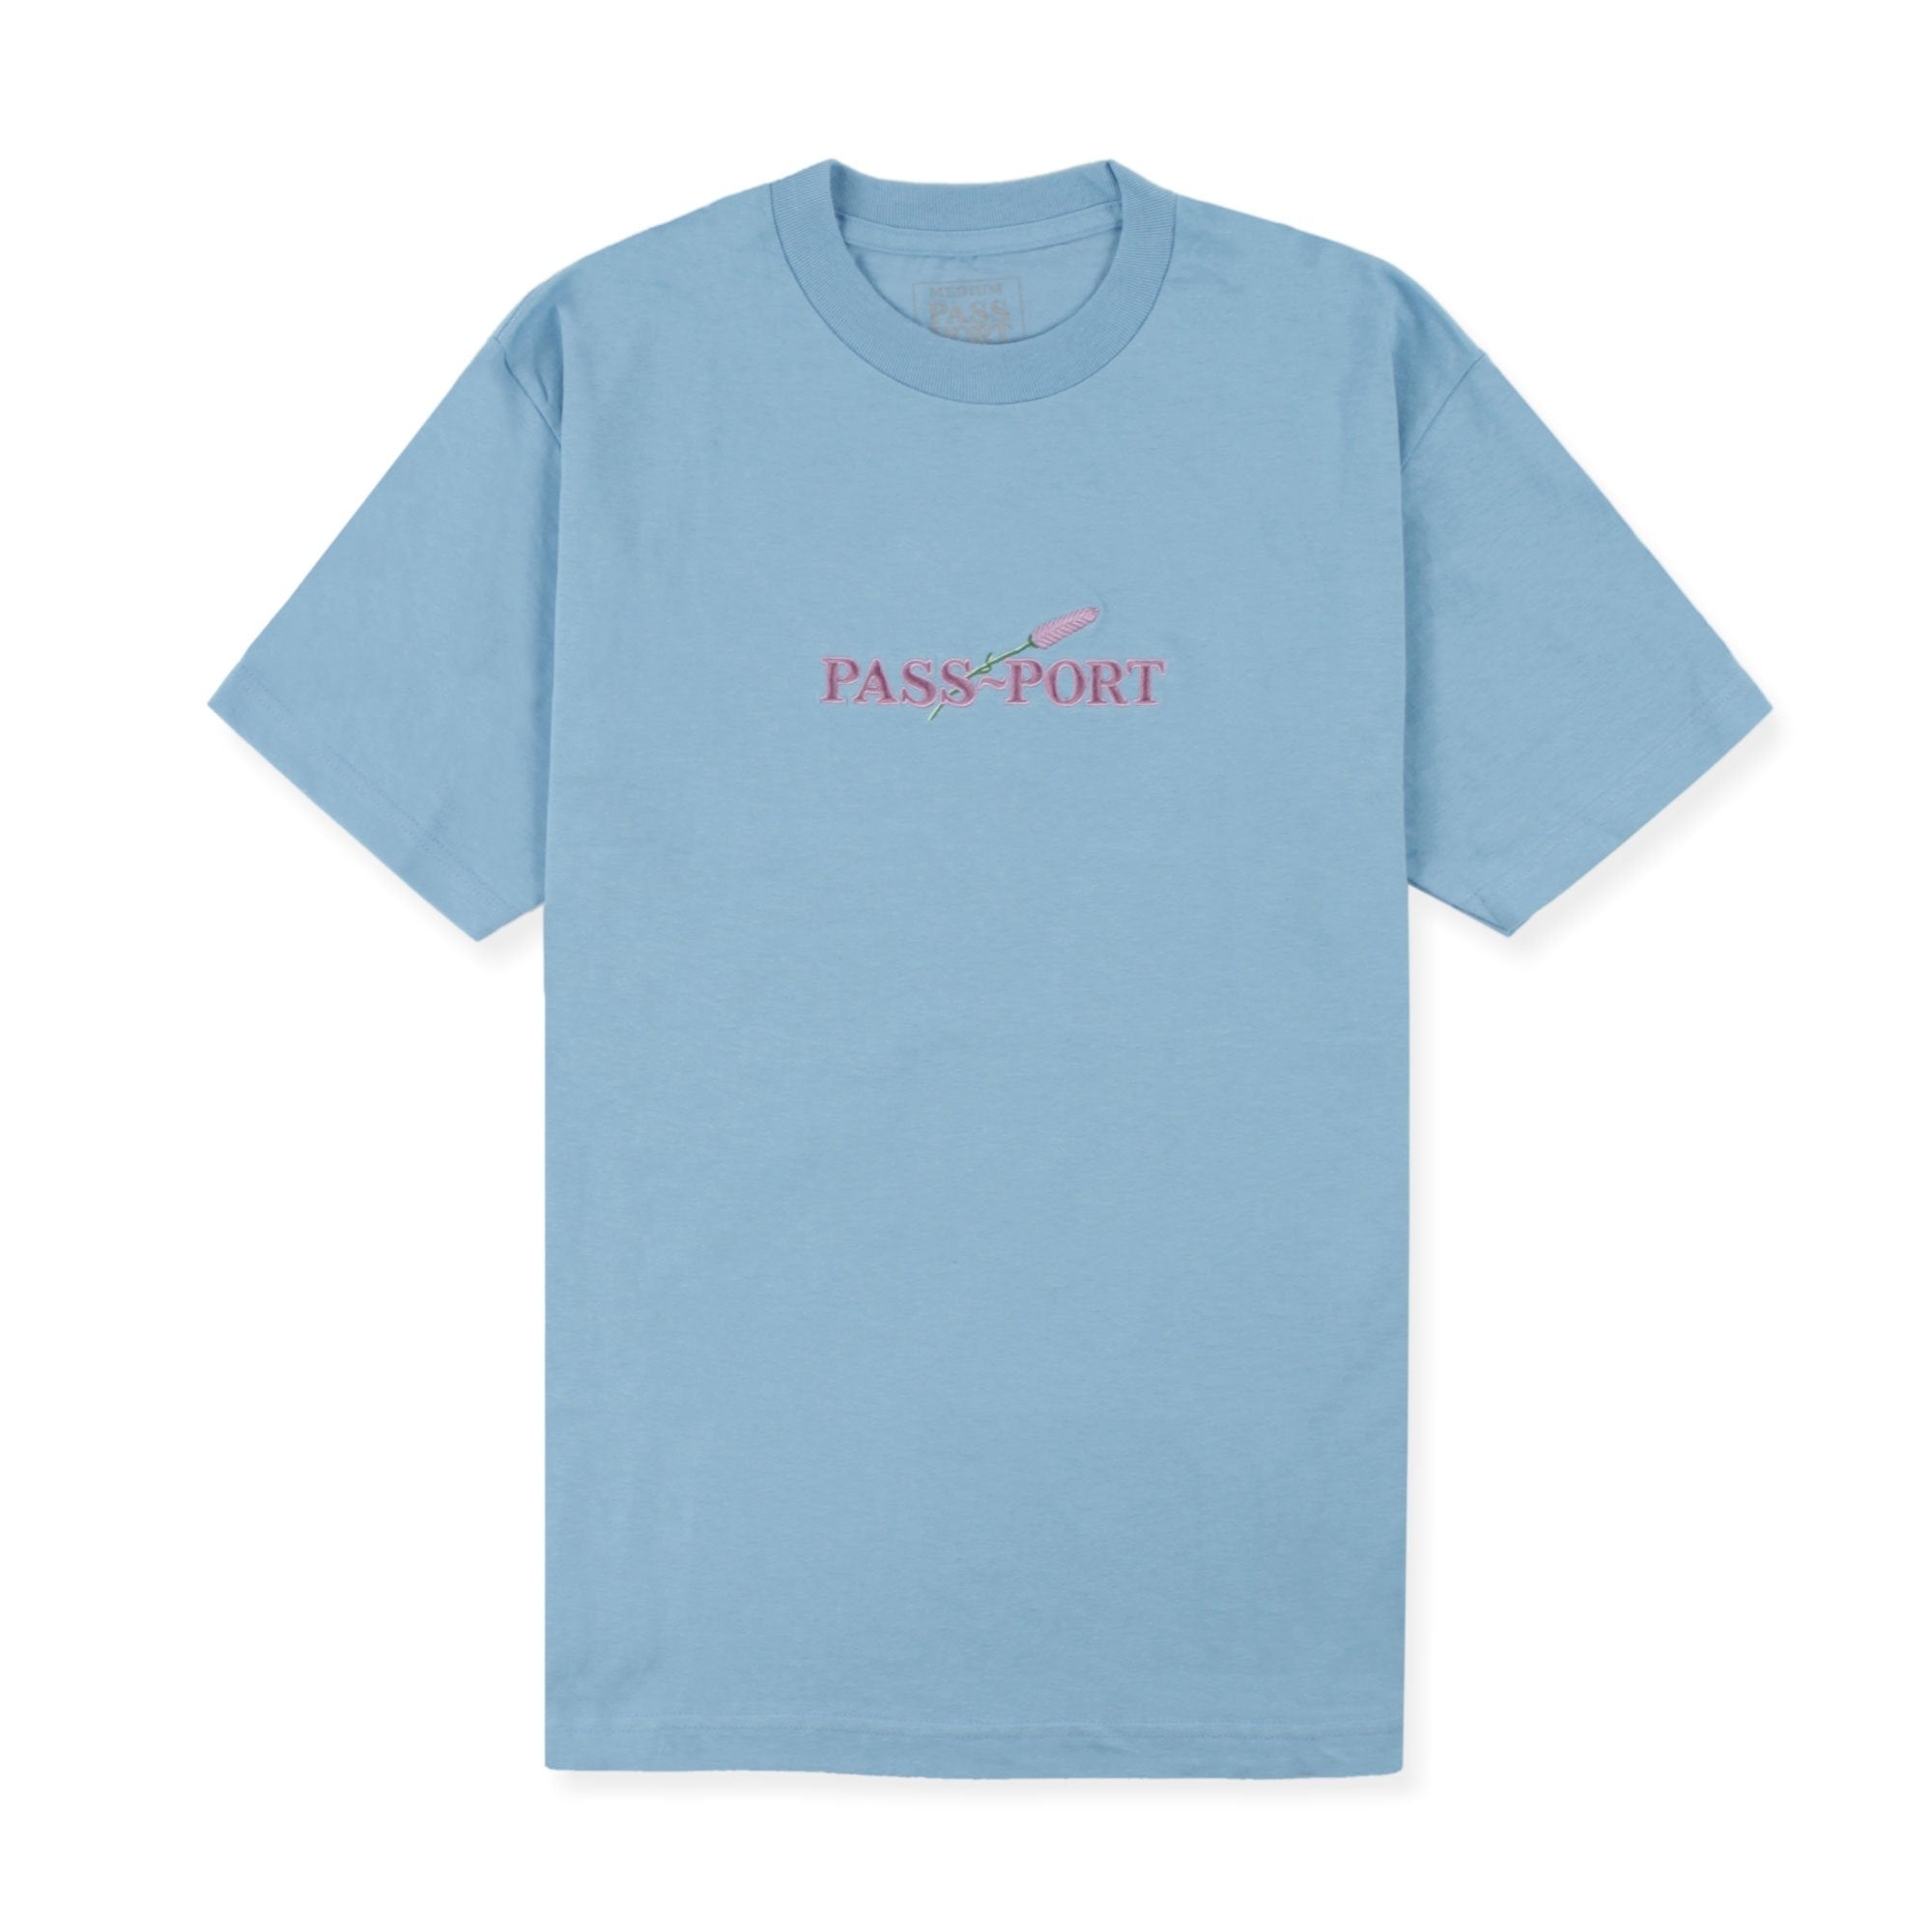 Passport Lavender Tee Product Photo #1